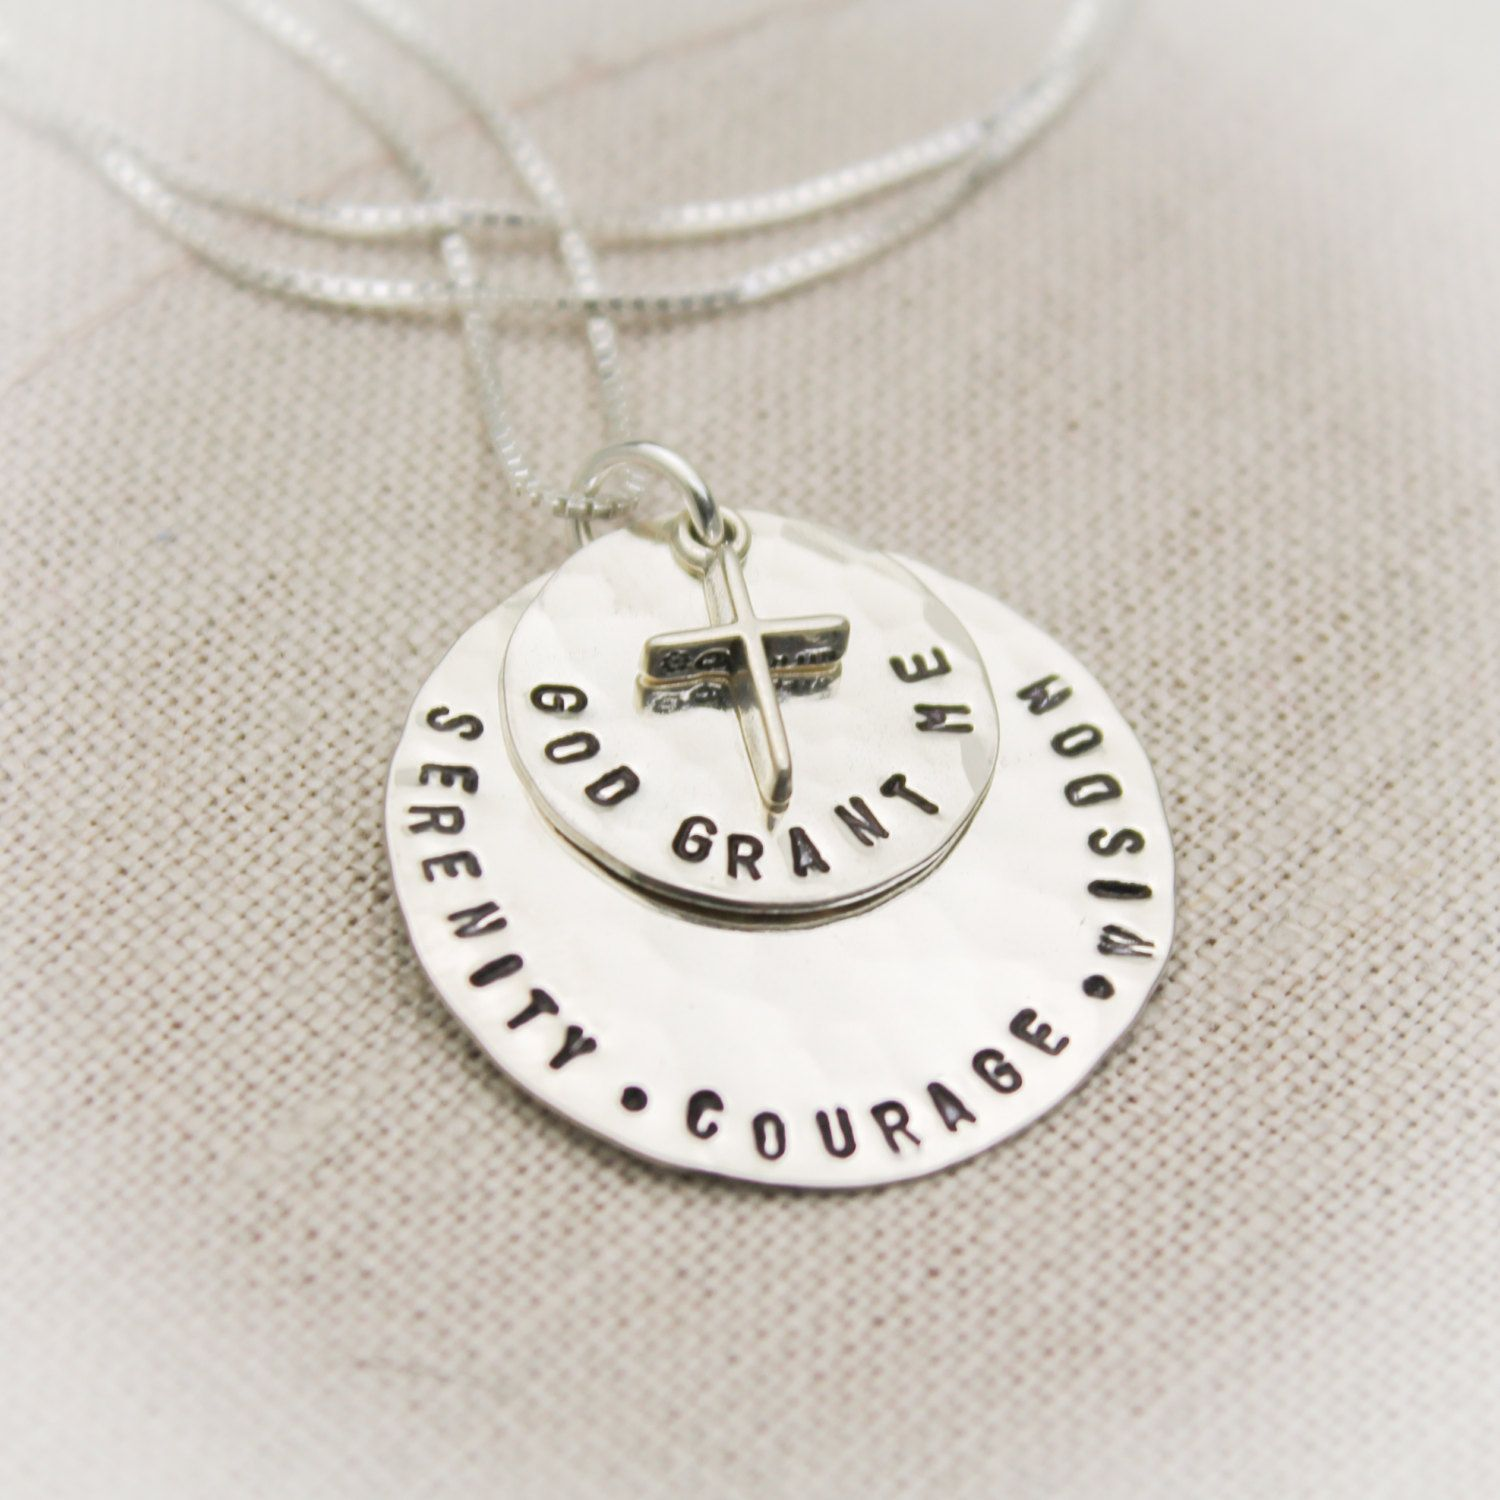 Serenity prayer pendant necklace in sterling silver with cross serenity prayer pendant necklace in sterling silver with cross charm hand stamped personalized 6195 mozeypictures Images